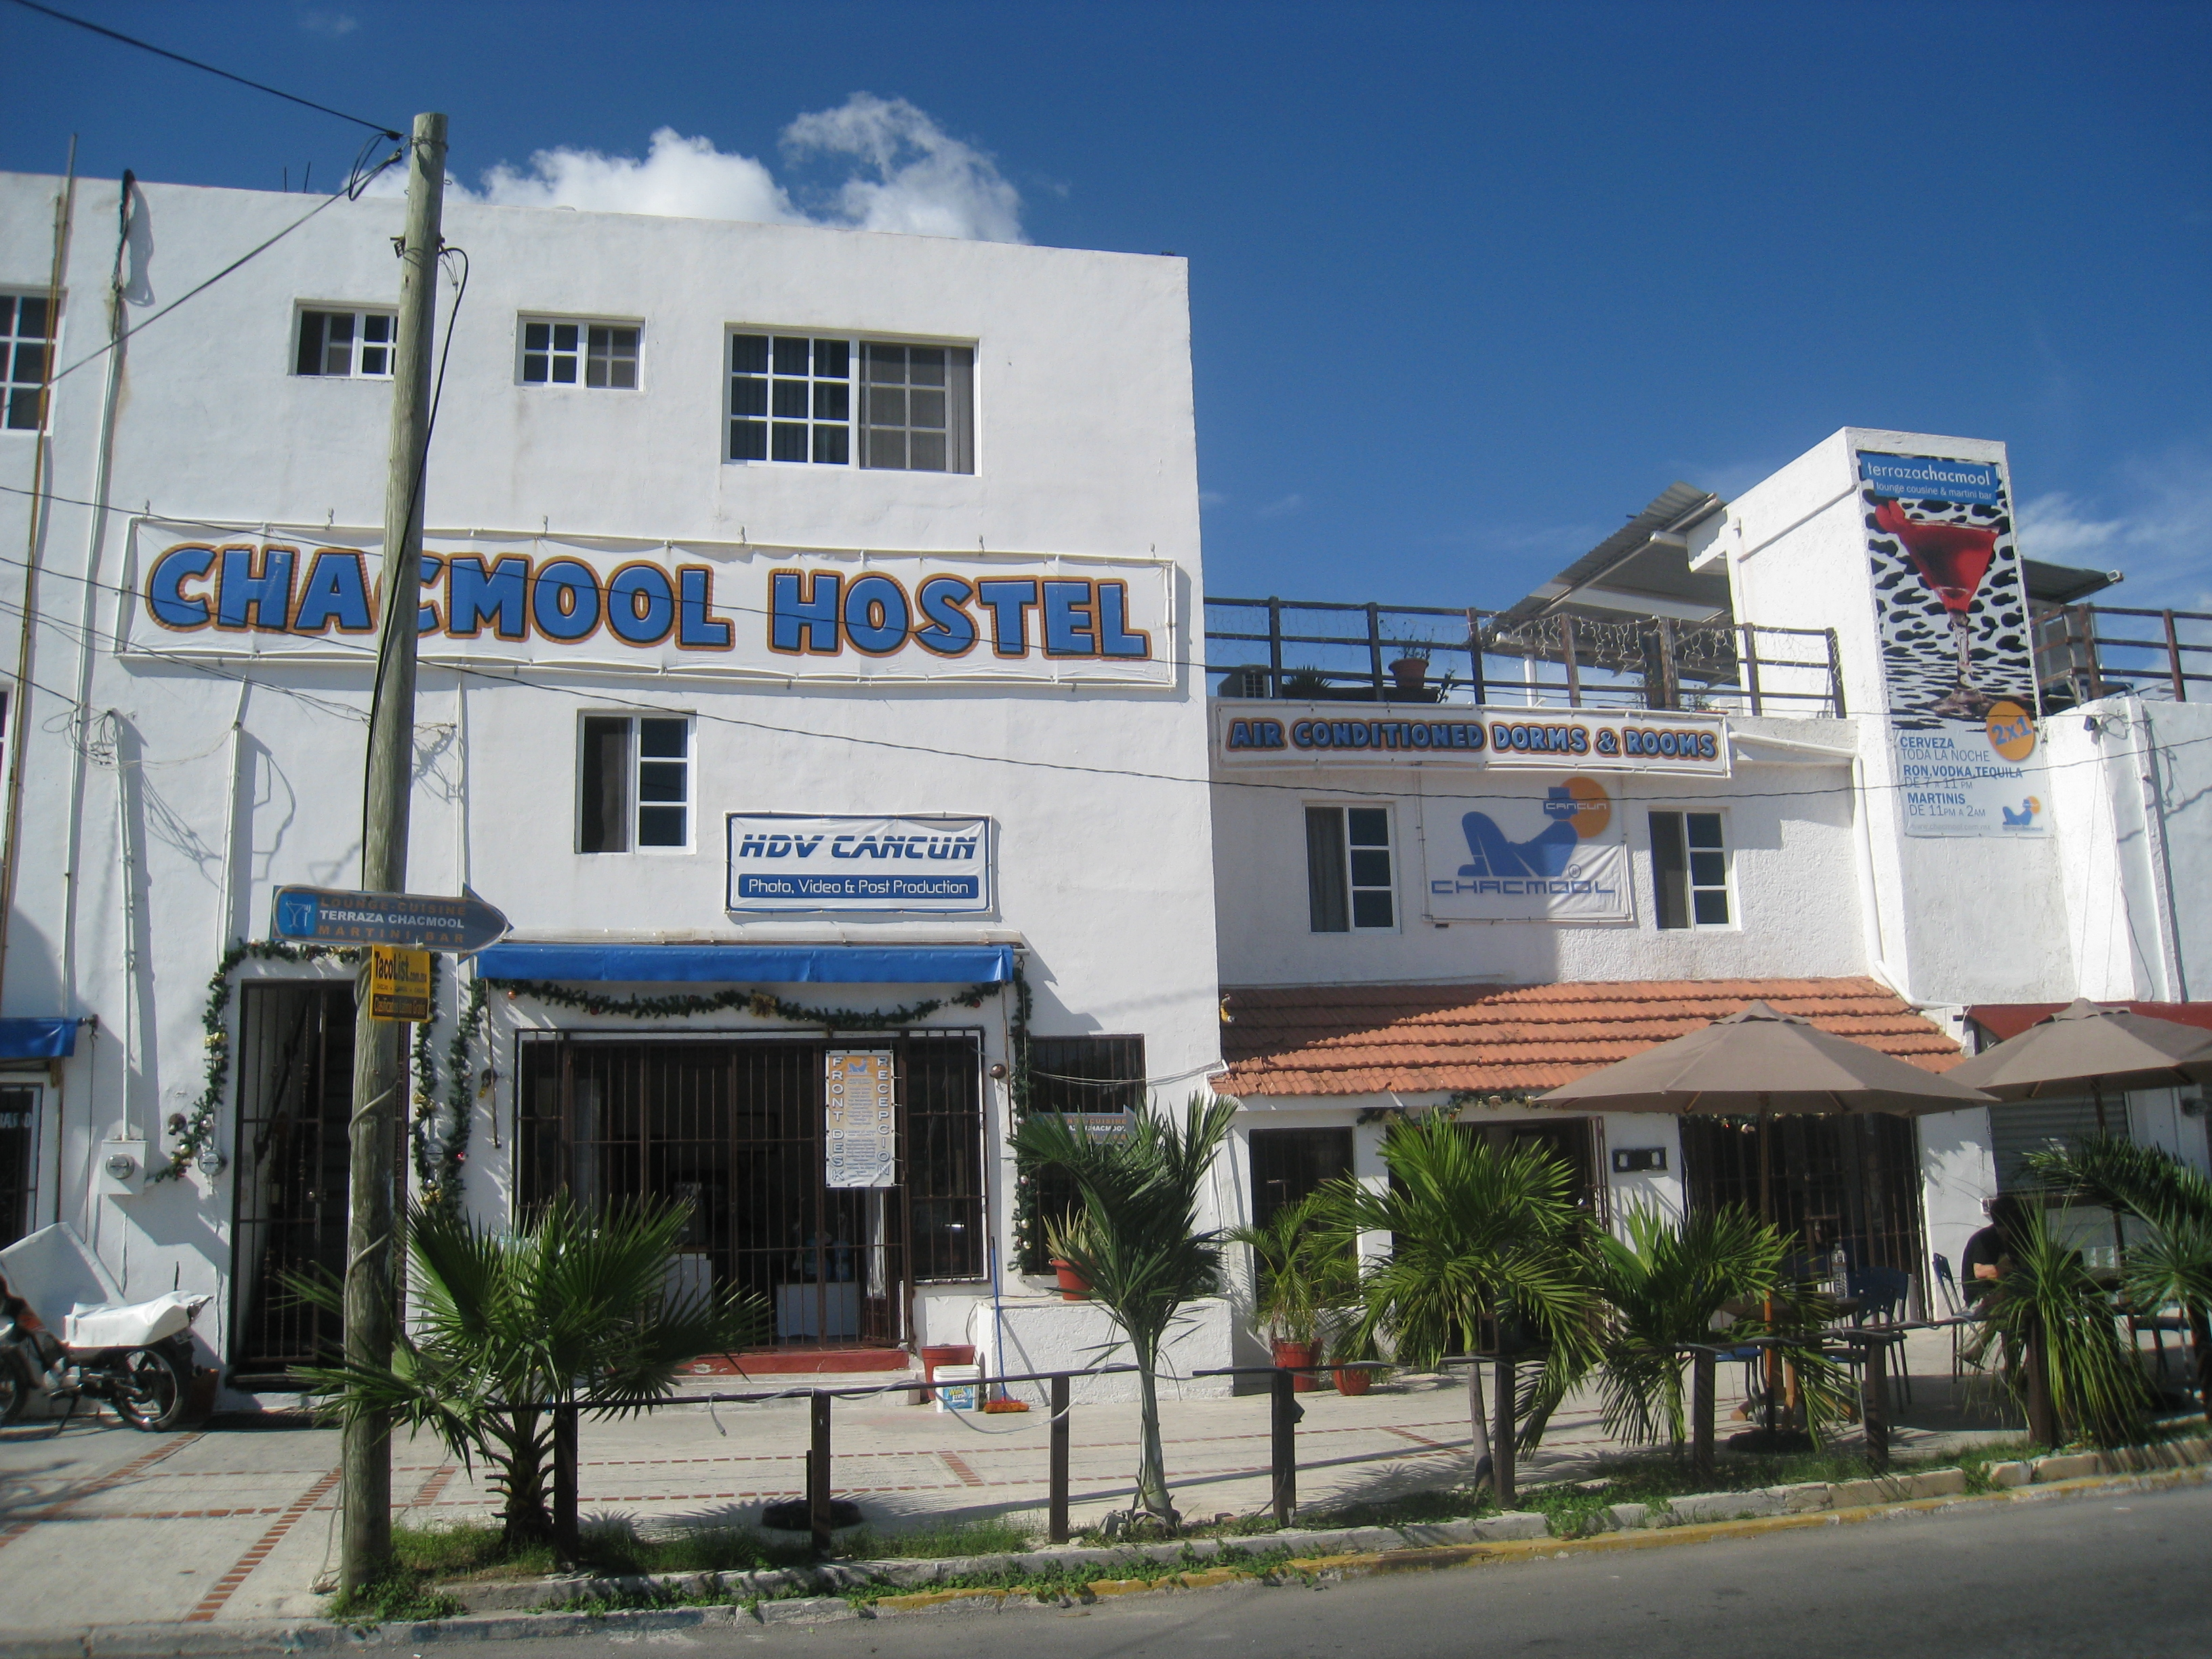 Chacmool Hostel